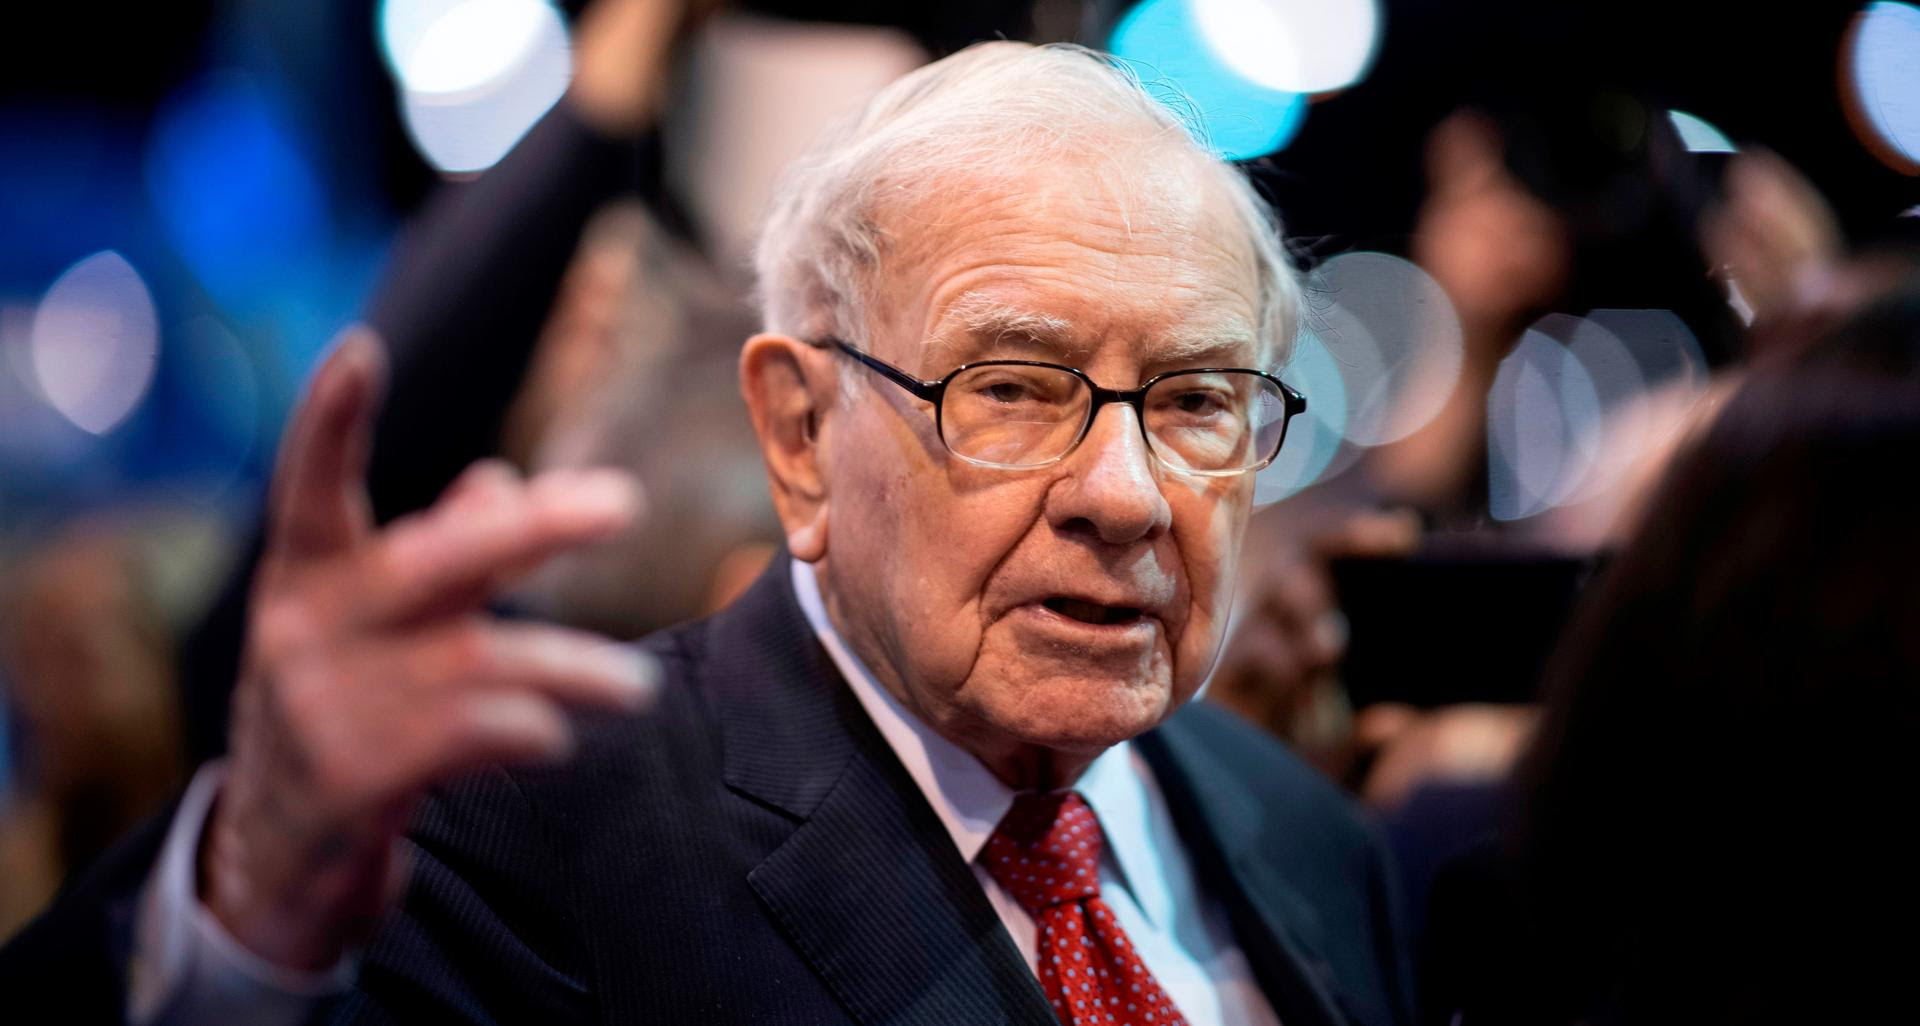 Warren Buffett, CEO of Berkshire Hathaway, speaks to the press as he arrives at the 2019 annual shareholders meeting in Omaha, Nebraska, May 4, 2019. Photo: JOHANNES EISELE/AFP via Getty Images